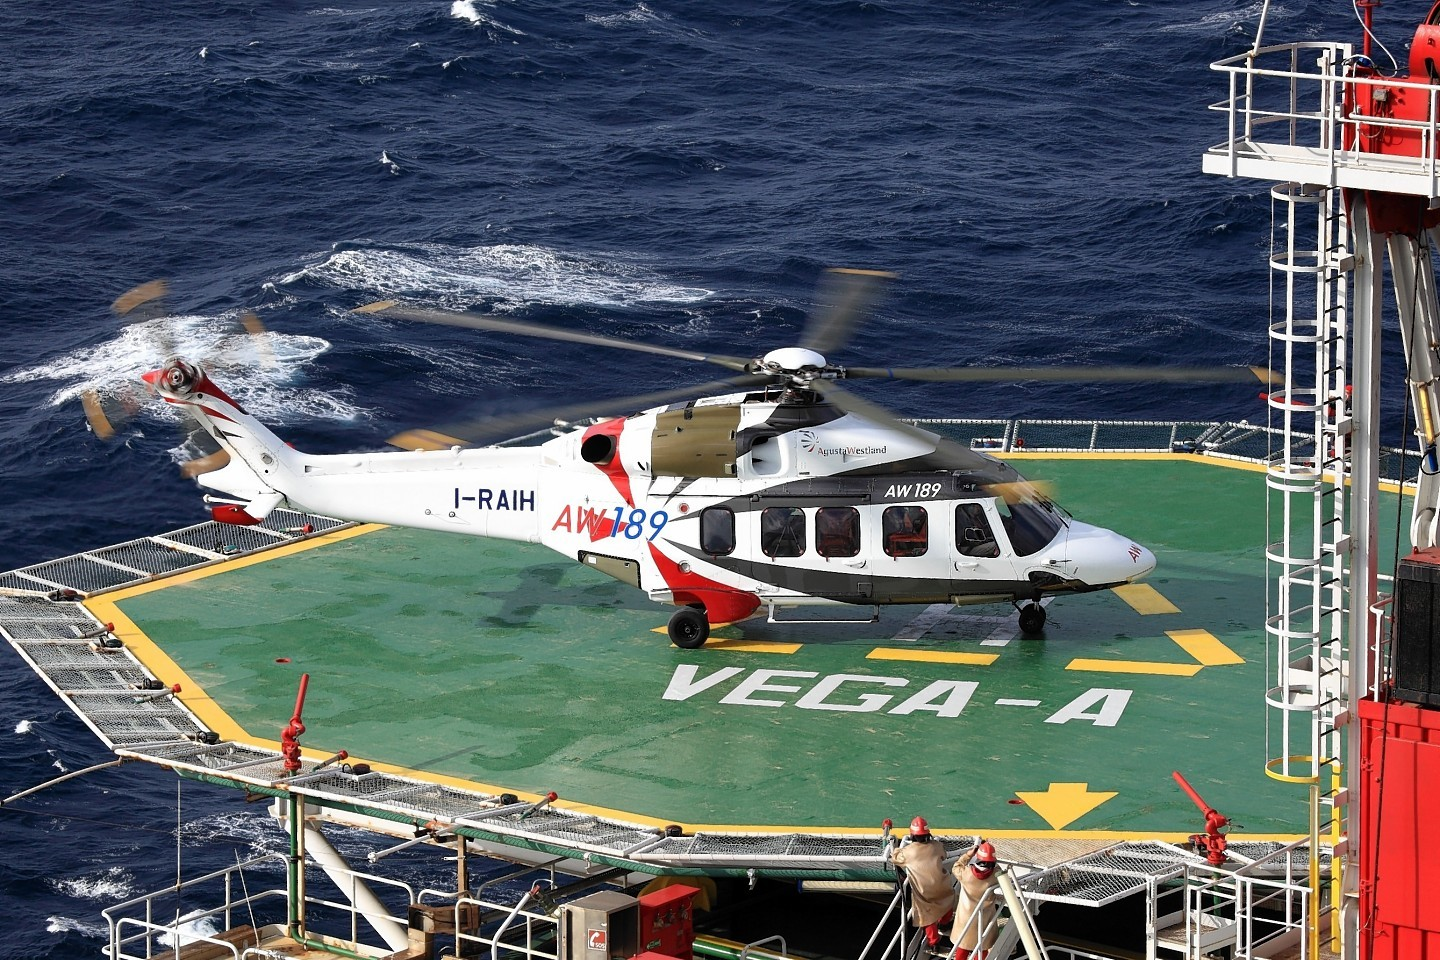 One of AugustaWestland's new AW189 helicopters